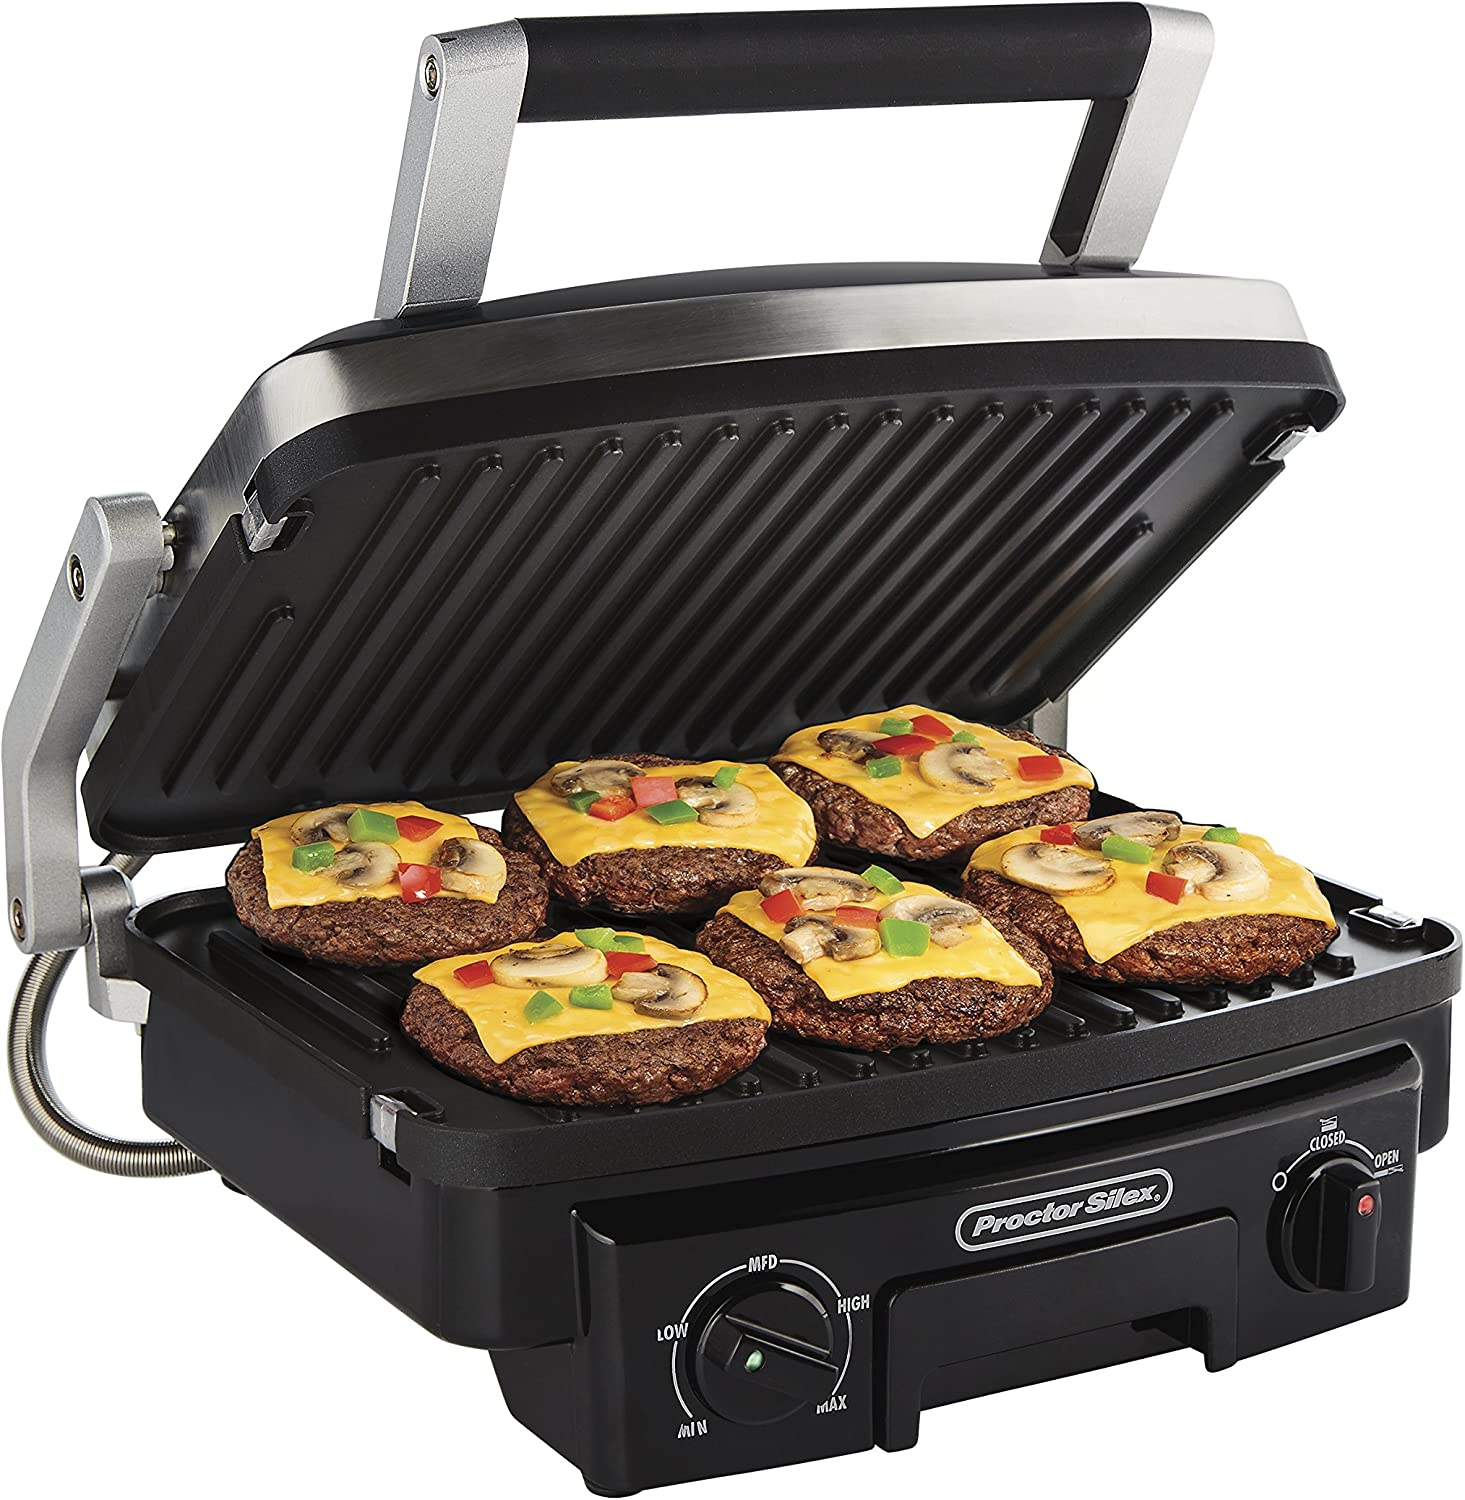 Proctor Silex 5-in-1 Electric Indoor Grill review